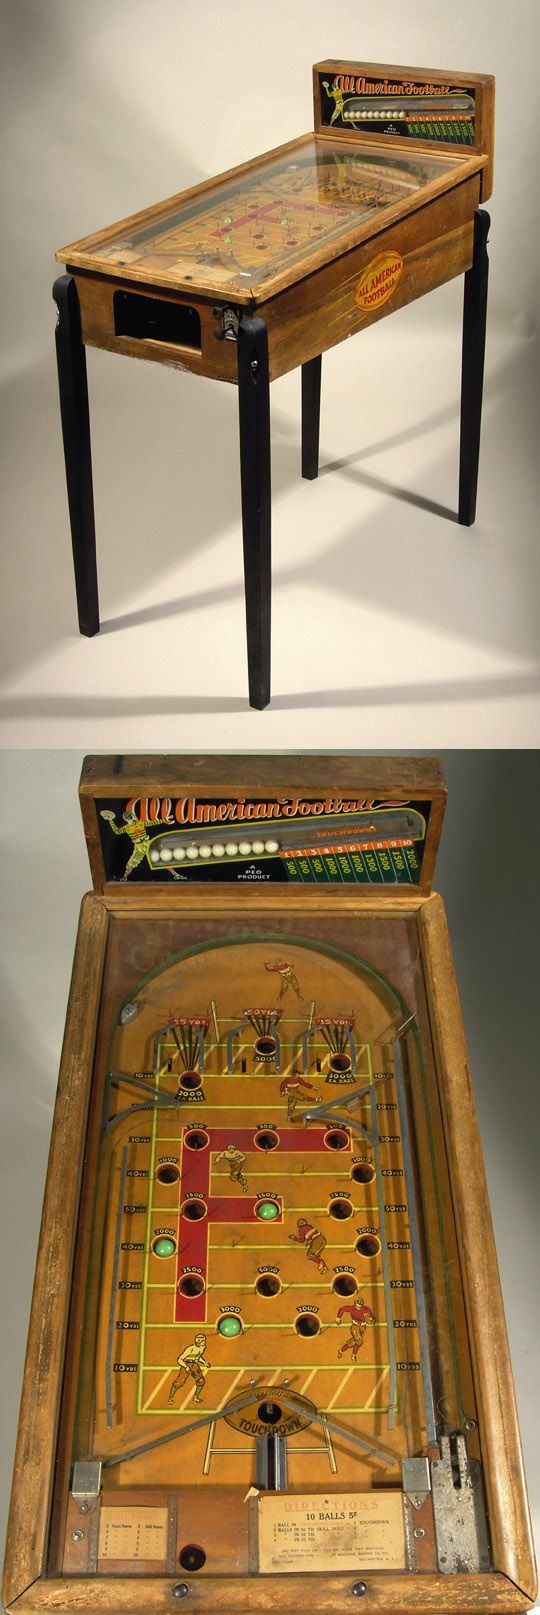 "All-American"" football coin operated pinball machine c.1930s. Vintage wooden cased pinball machine features painted football graphics on the interior playing field, along with a football decorated reverse painted glass backsplash containing playing marbles."